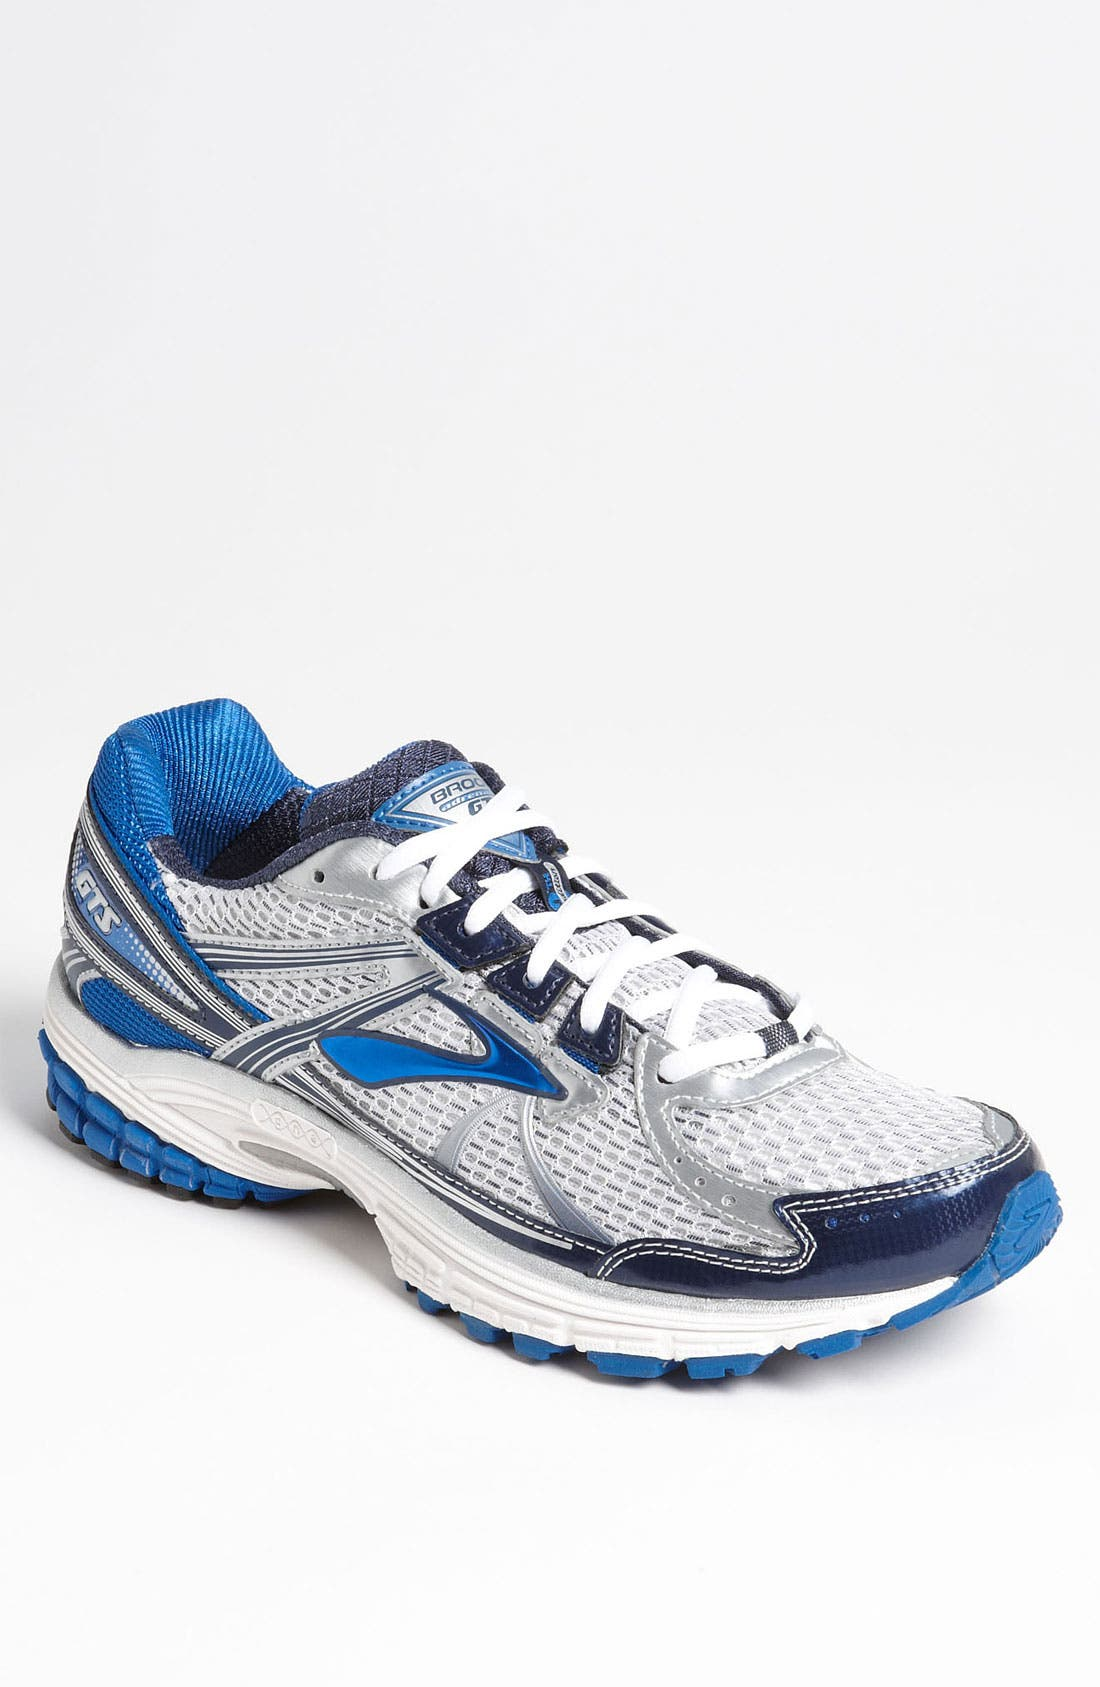 Main Image - Brooks 'Adrenaline GTS 13' Running Shoe (Men)(Regular Retail Price: $109.95)